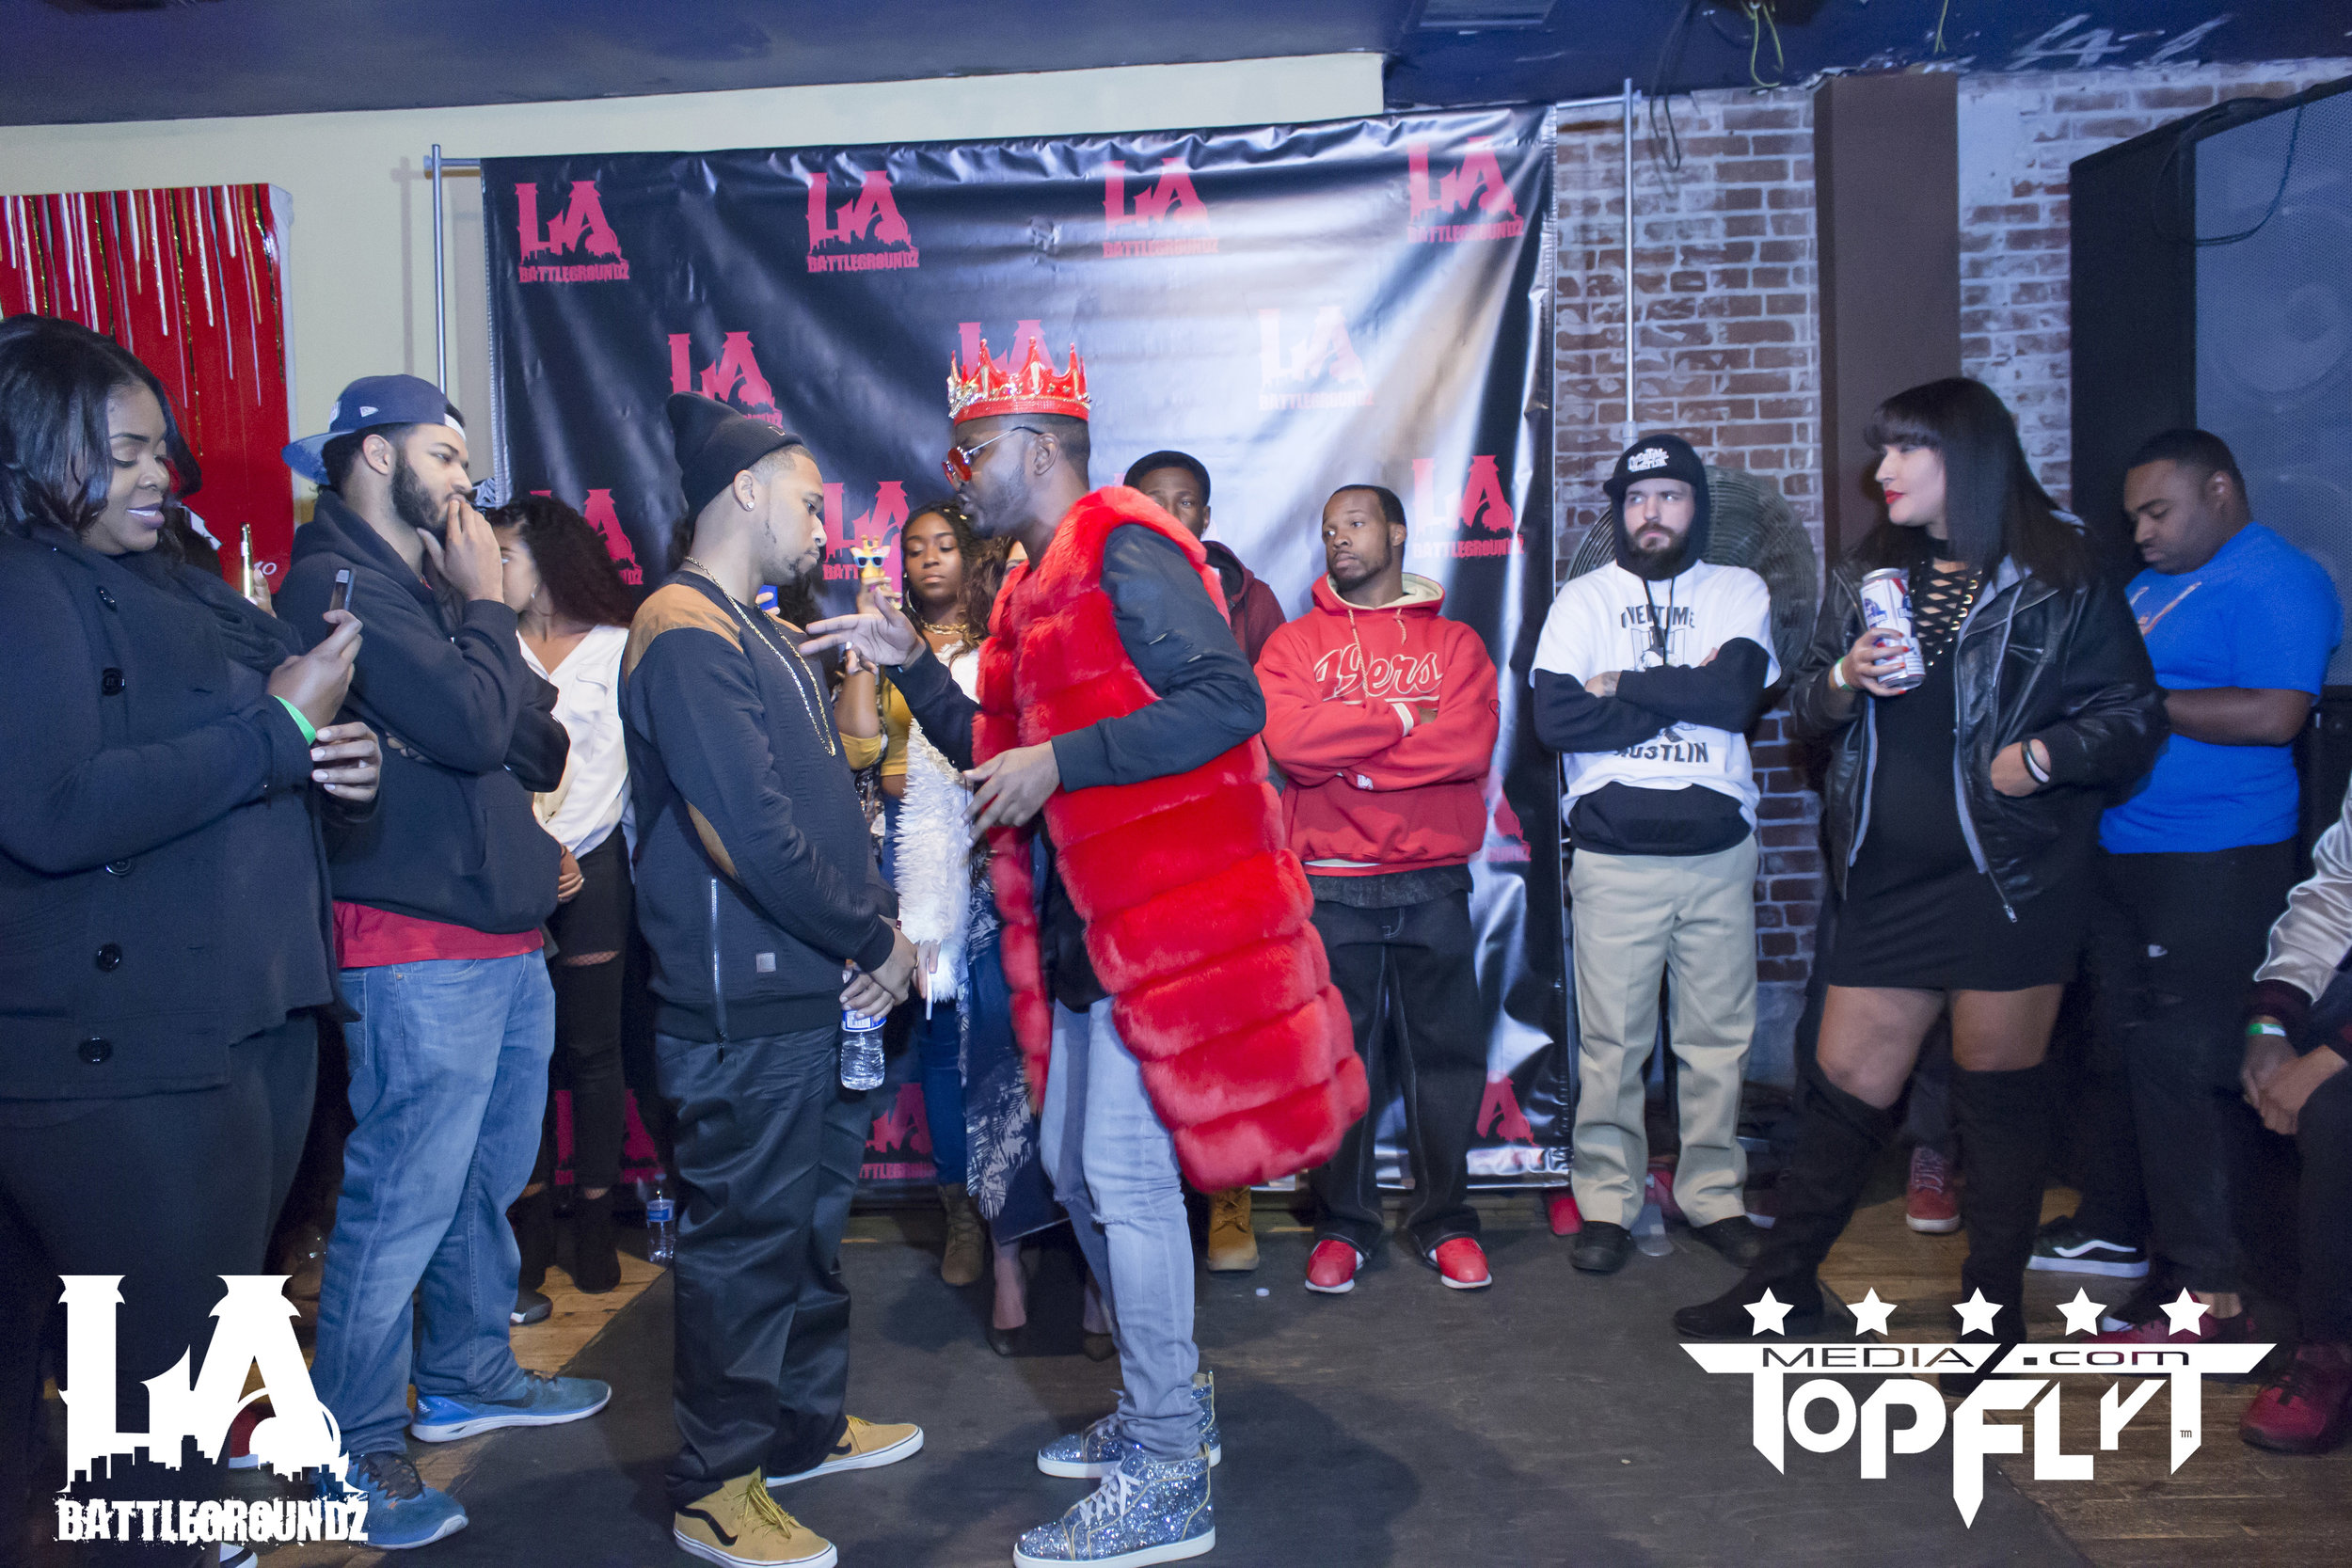 LA Battlegroundz - Decembarfest - The Christening_56.jpg